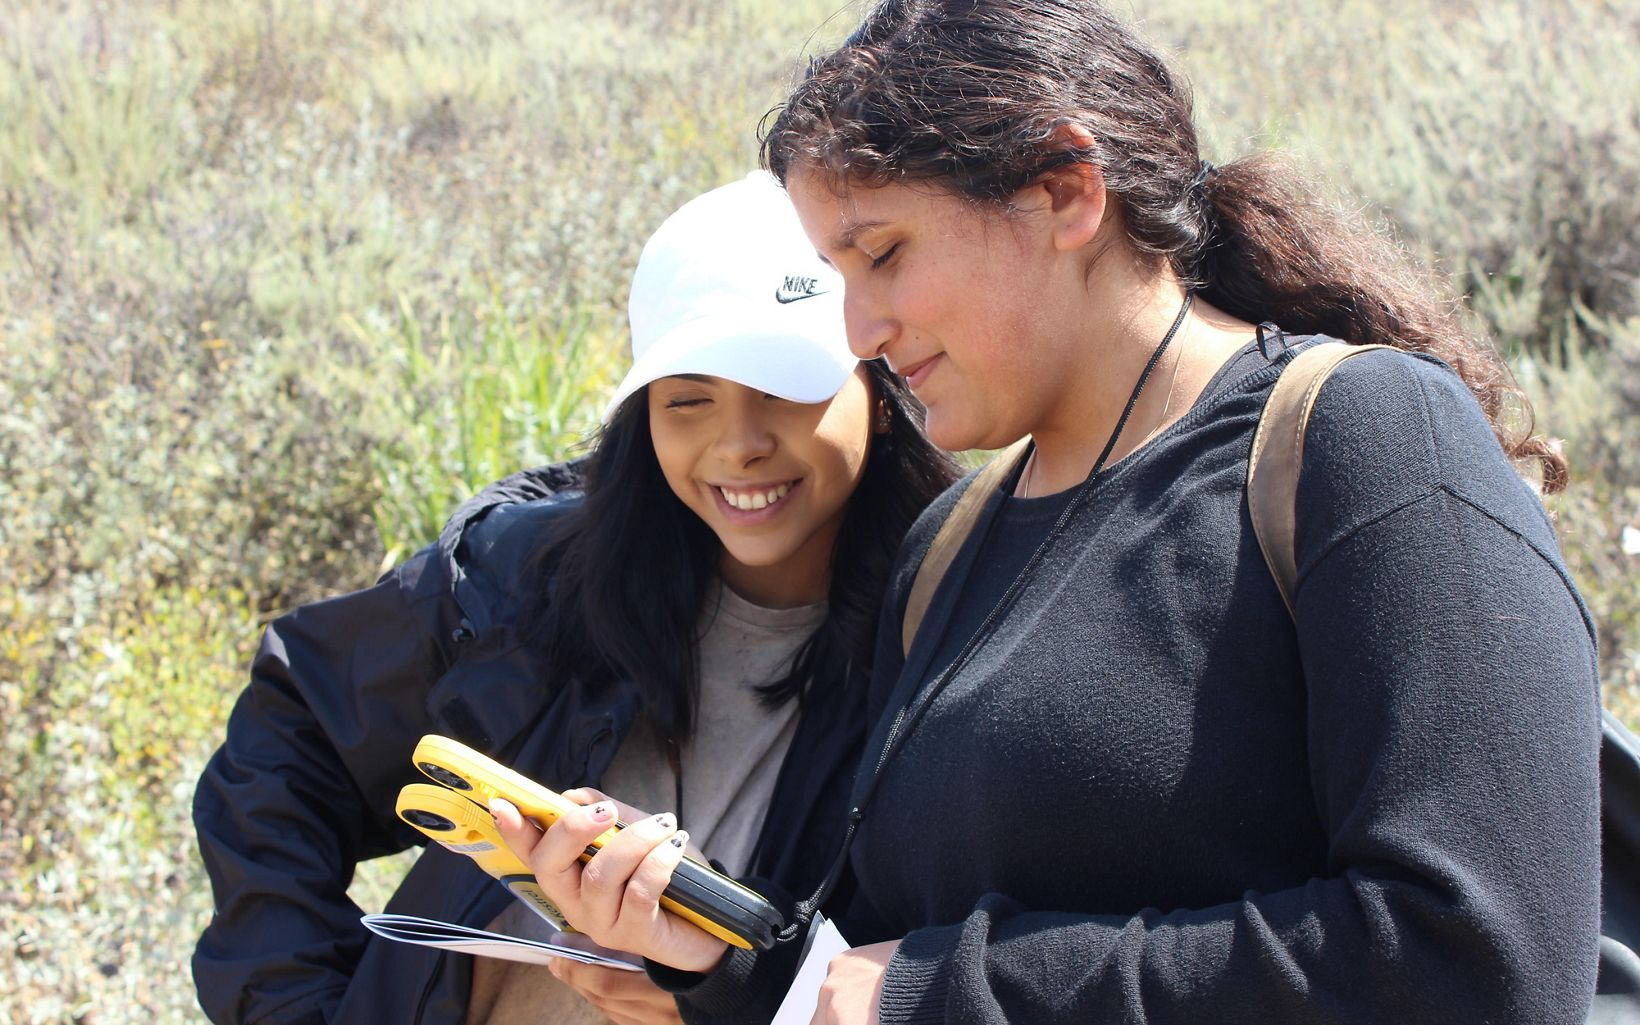 Lompoc Highschool students experiment with GPS technology on a visit to the preserve.